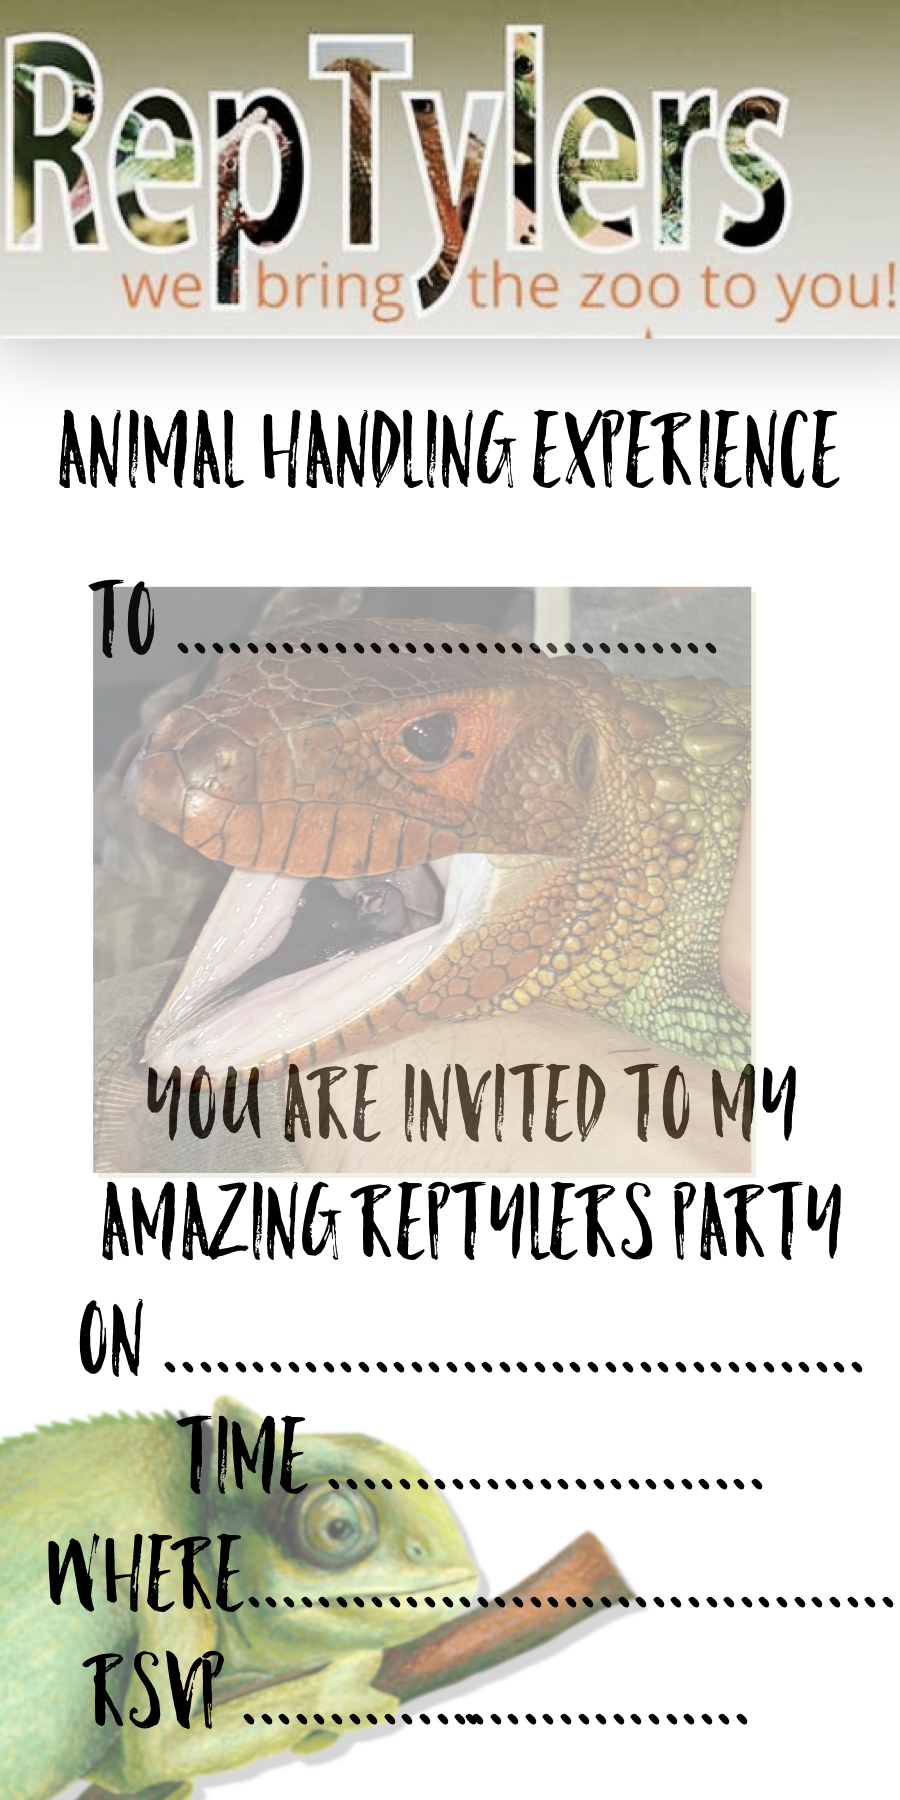 Party Invitation Template | RepTylers - We Bring The Zoo To You ...